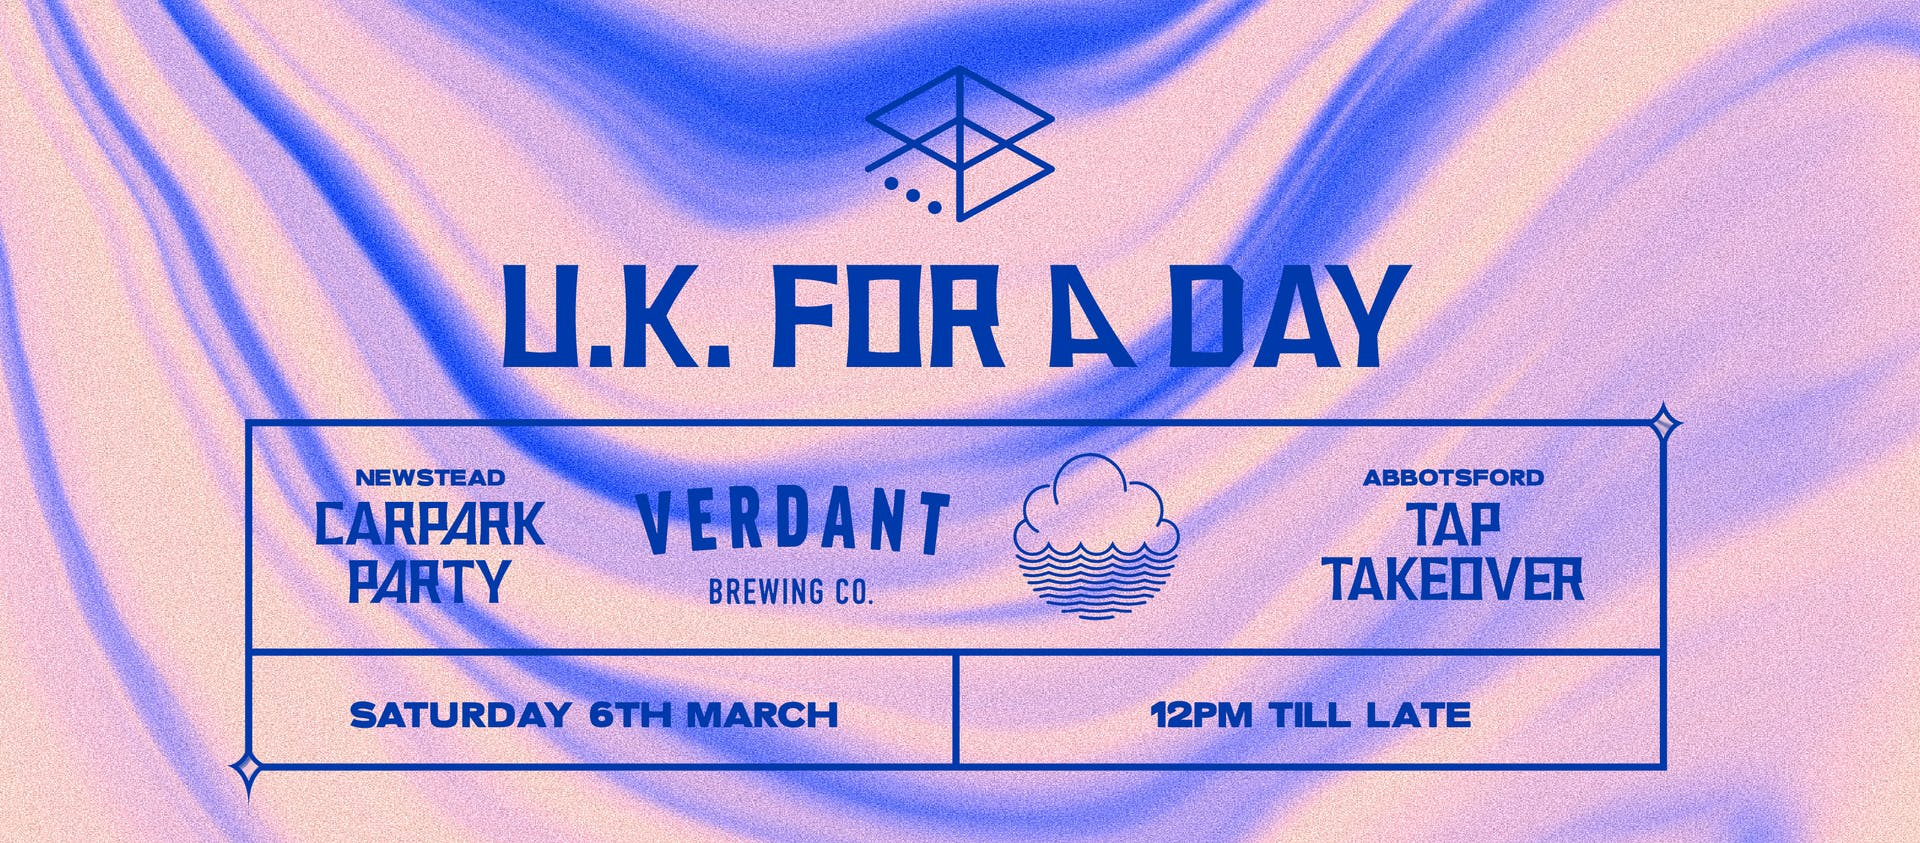 FB BANNER_UK for a Day